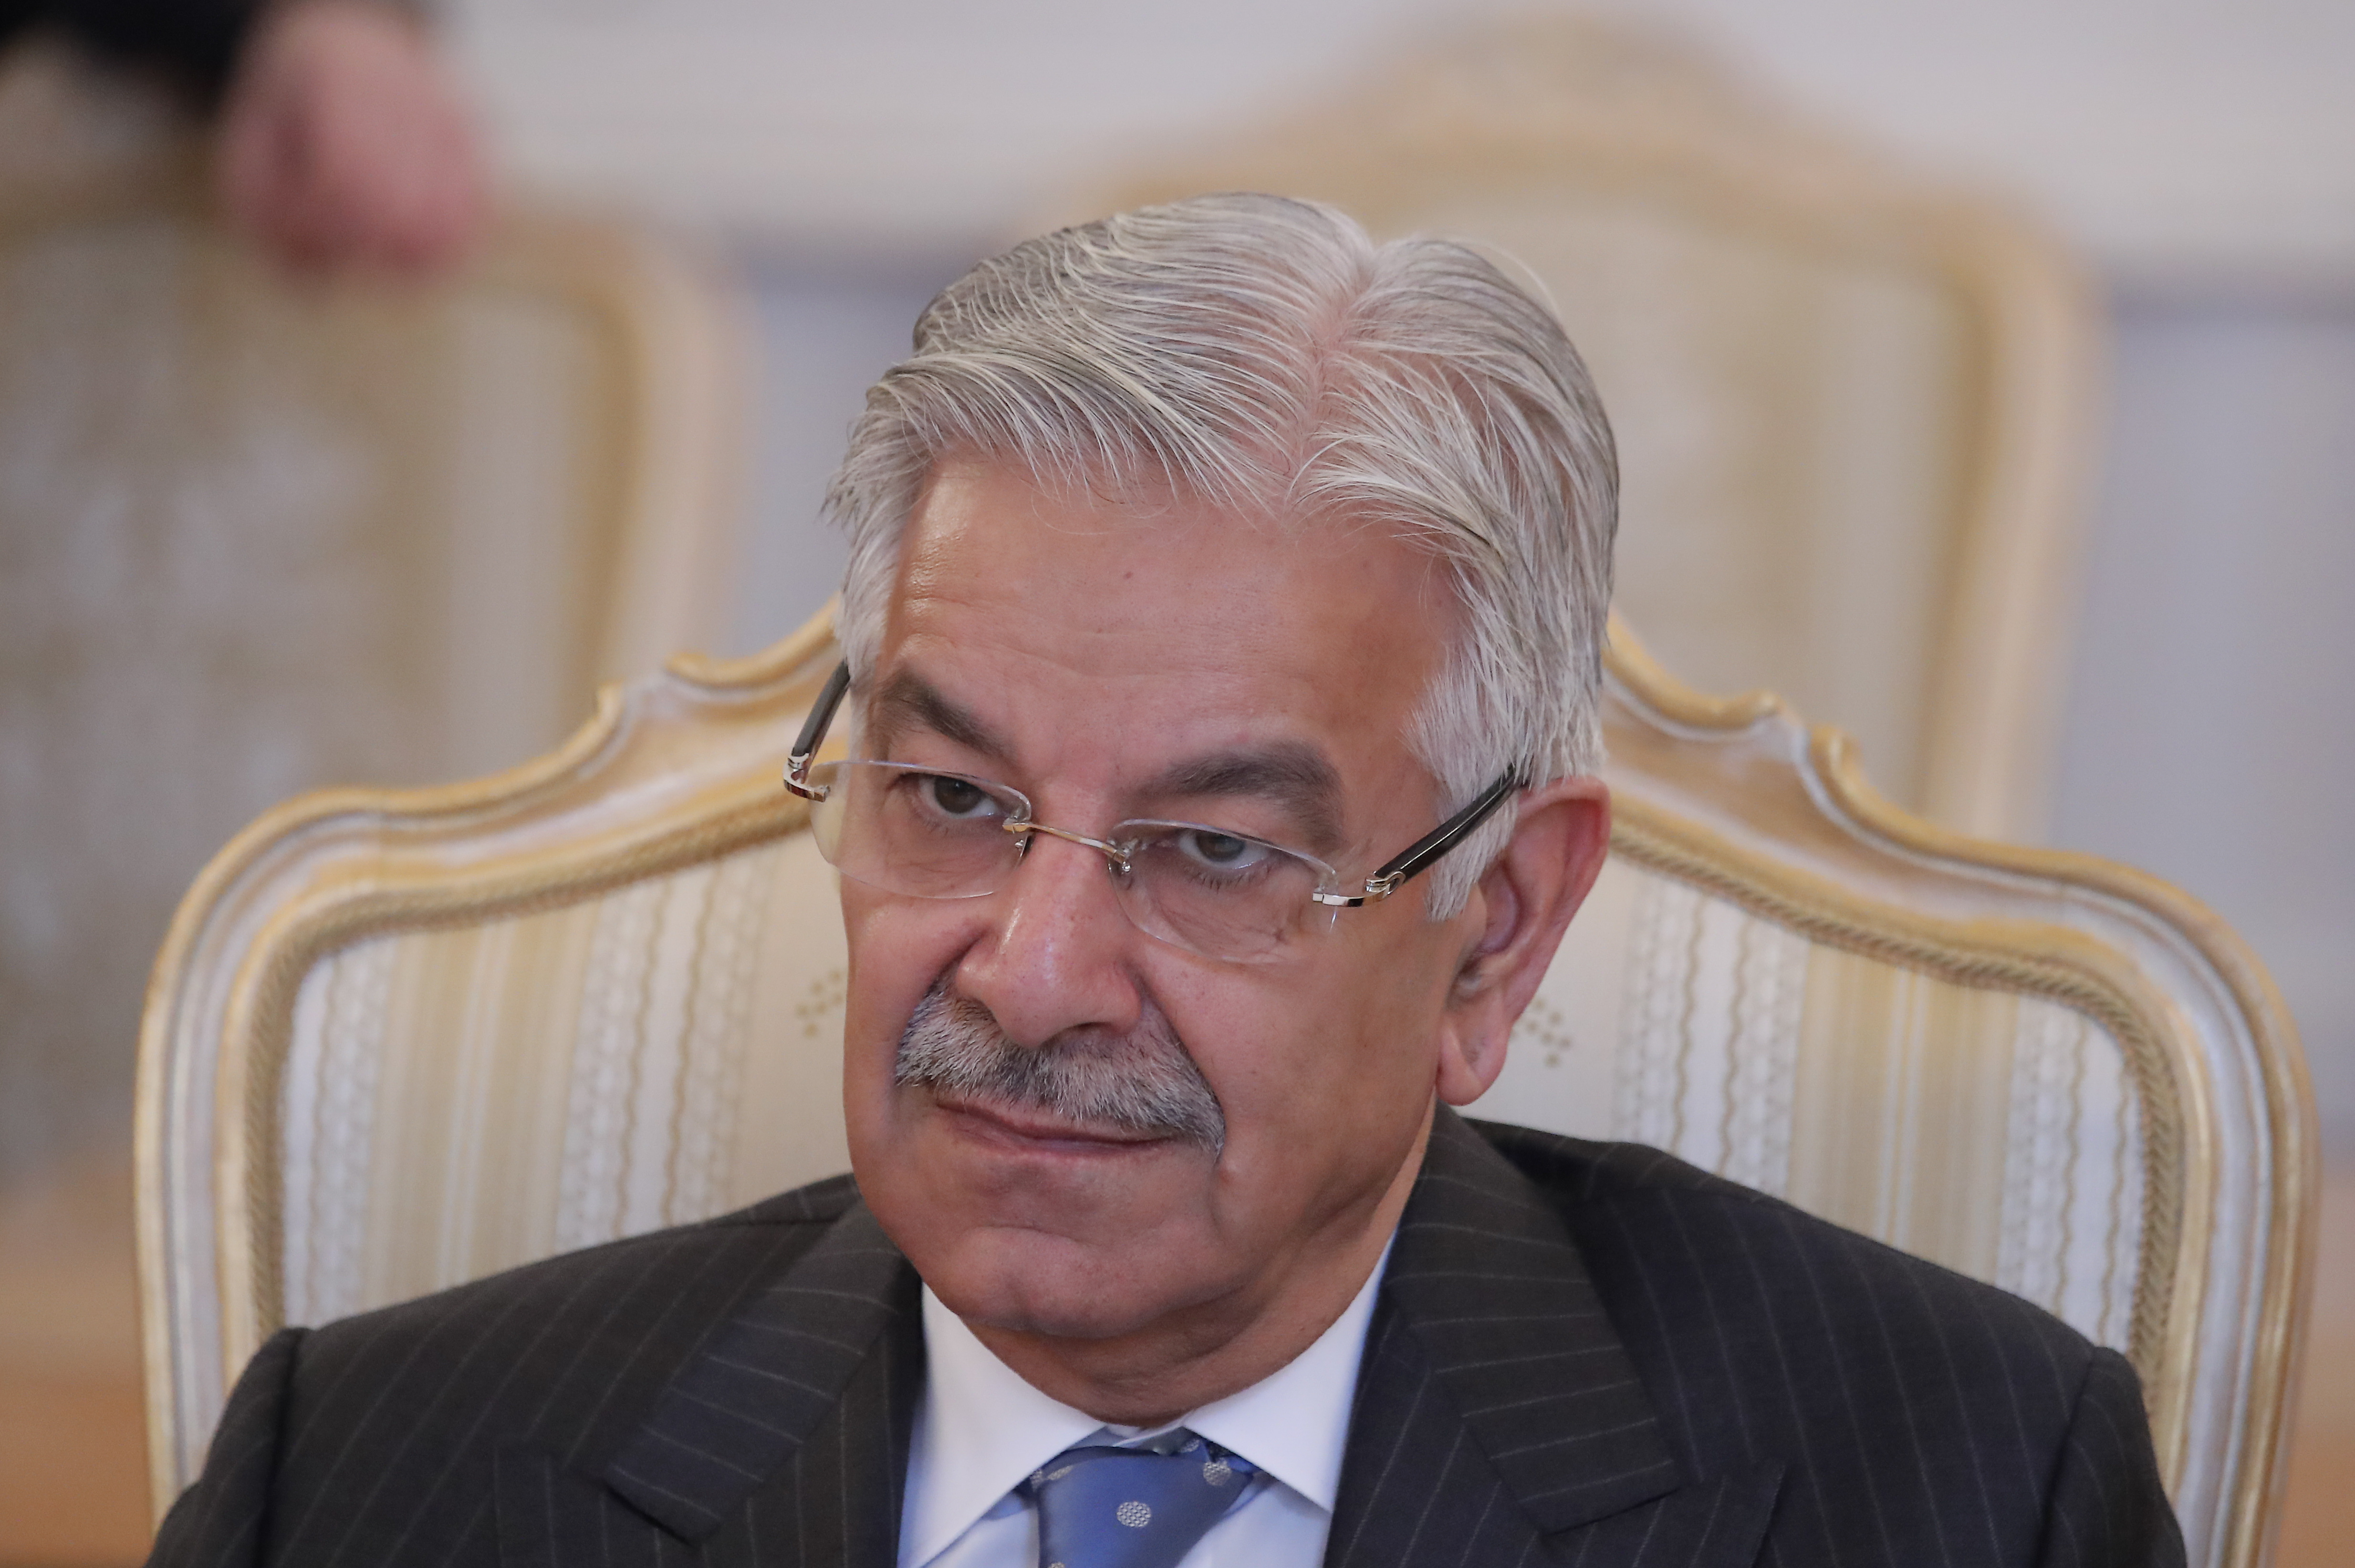 Pakistani Foreign Minister Khawaja Asif attends a meeting with his Russian counterpart Sergei Lavrov during a visit to Moscow, Russia, Feb. 20, 2018.